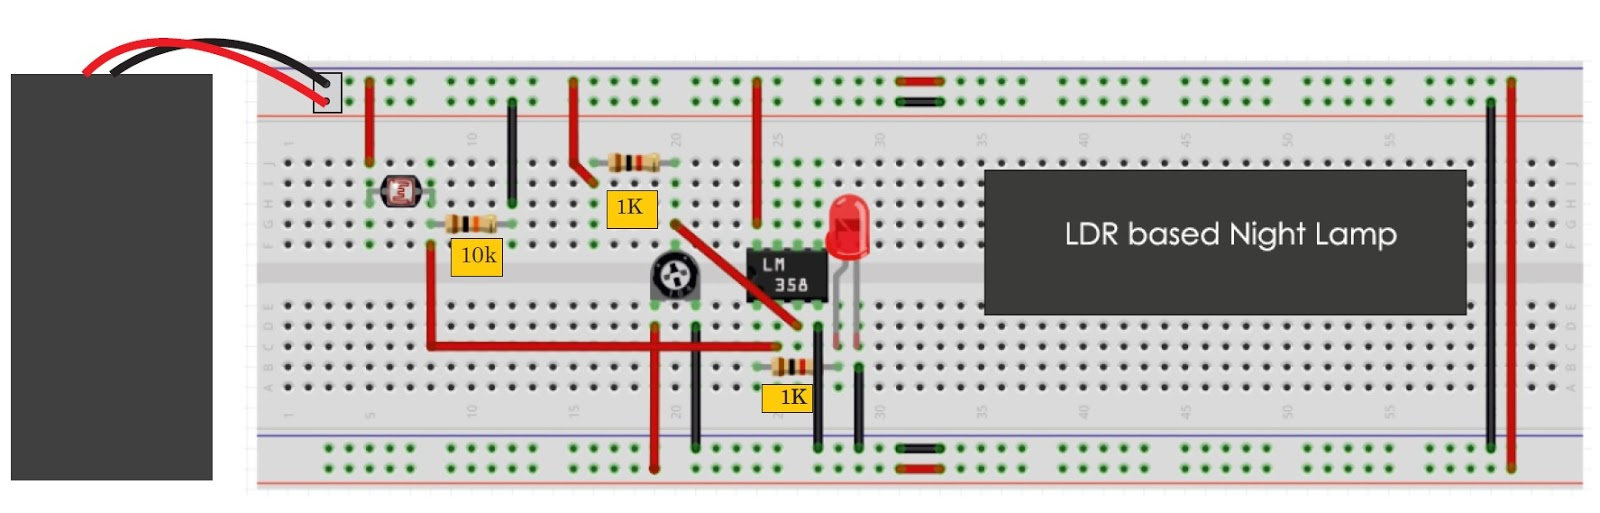 Basics Of Electronic Circuits and Projects : 2016